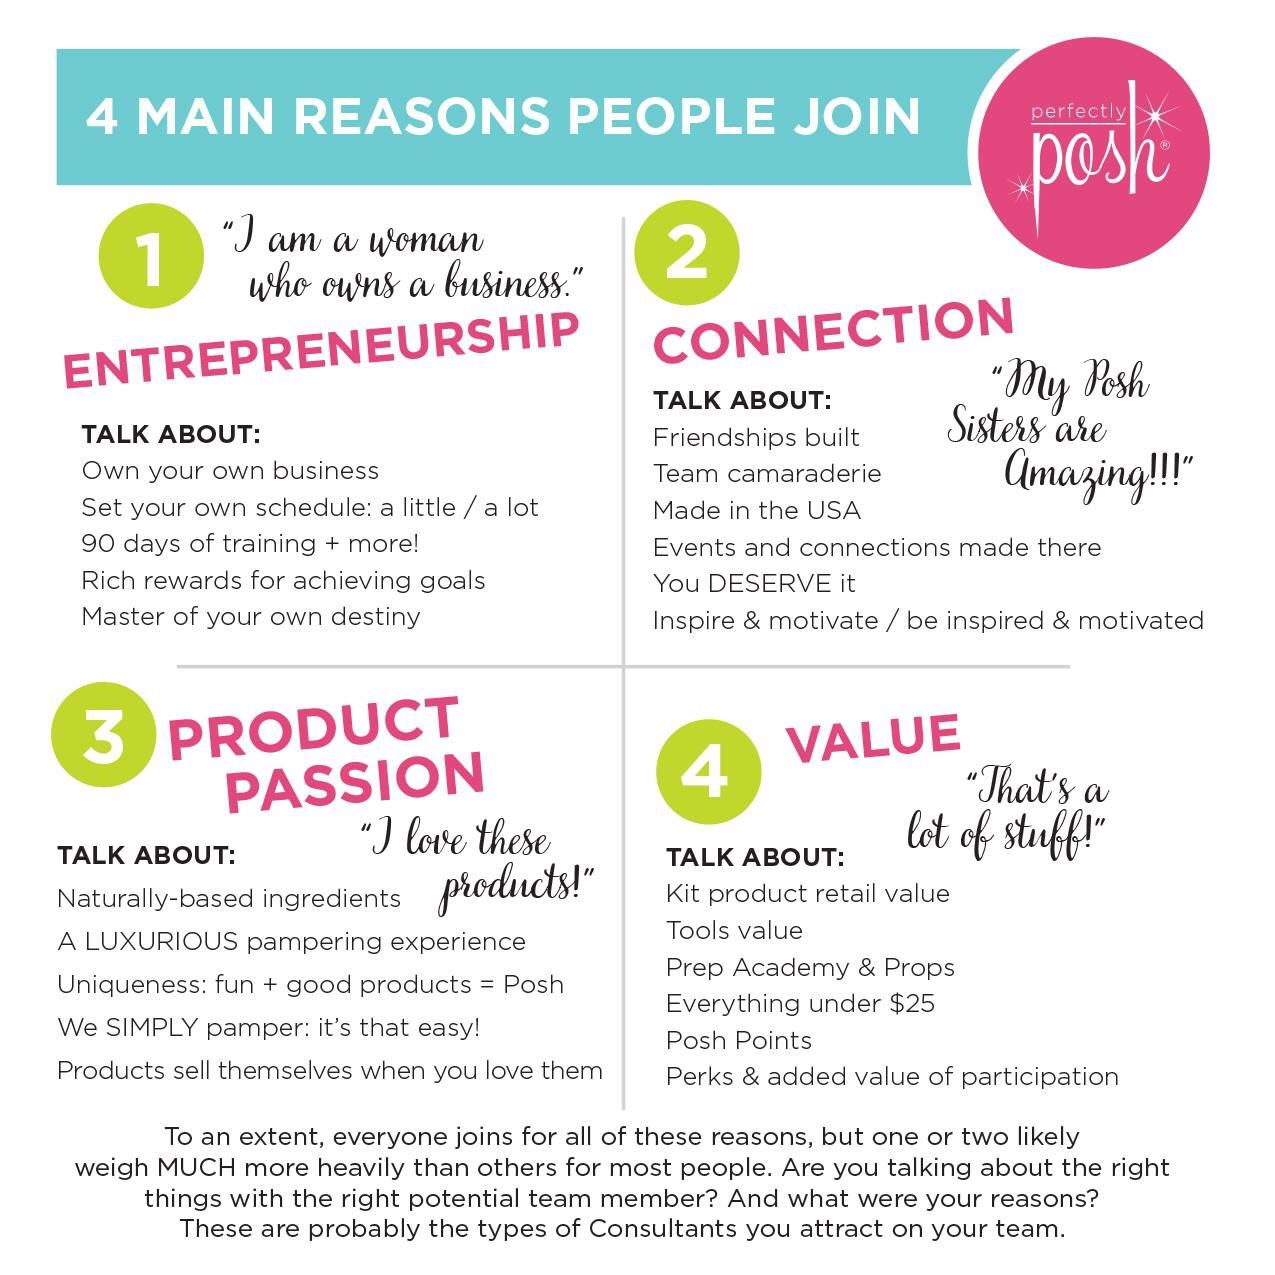 Which one are you? Which one would you be? Ask me about our awesome poshmas deals, especially on starter kits www.perfectlyposh.com/drelovesposh #joinposh